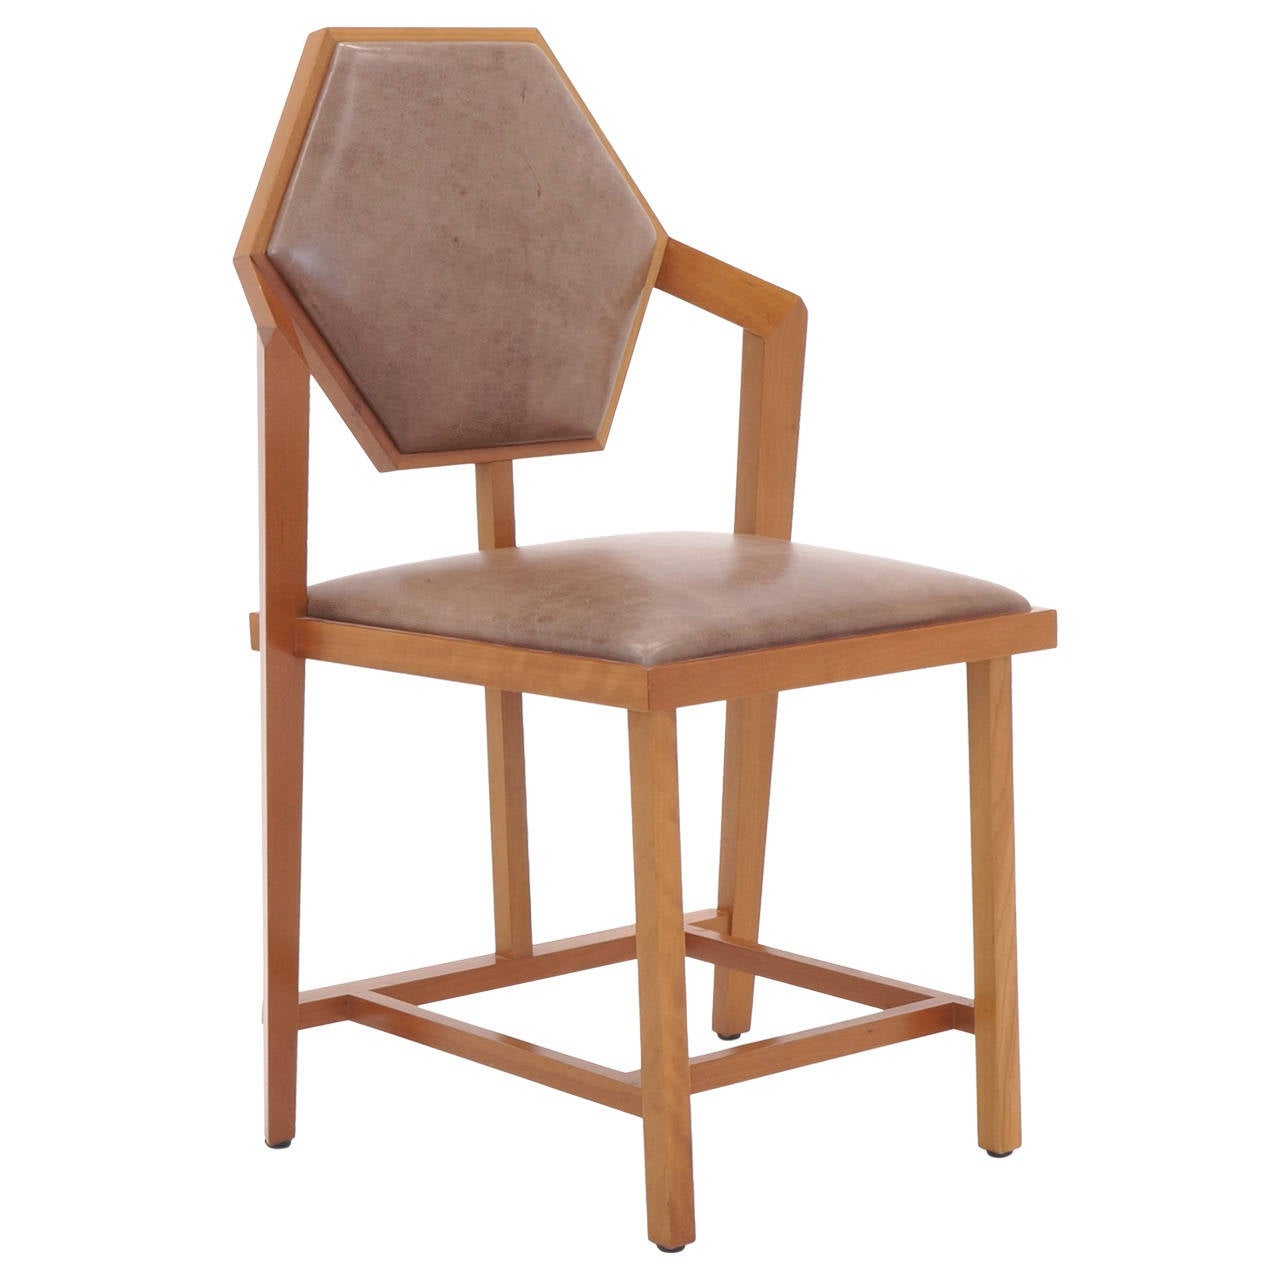 Frank Lloyd Wright Chairs Frank Lloyd Wright Chair For Cassina At 1stdibs